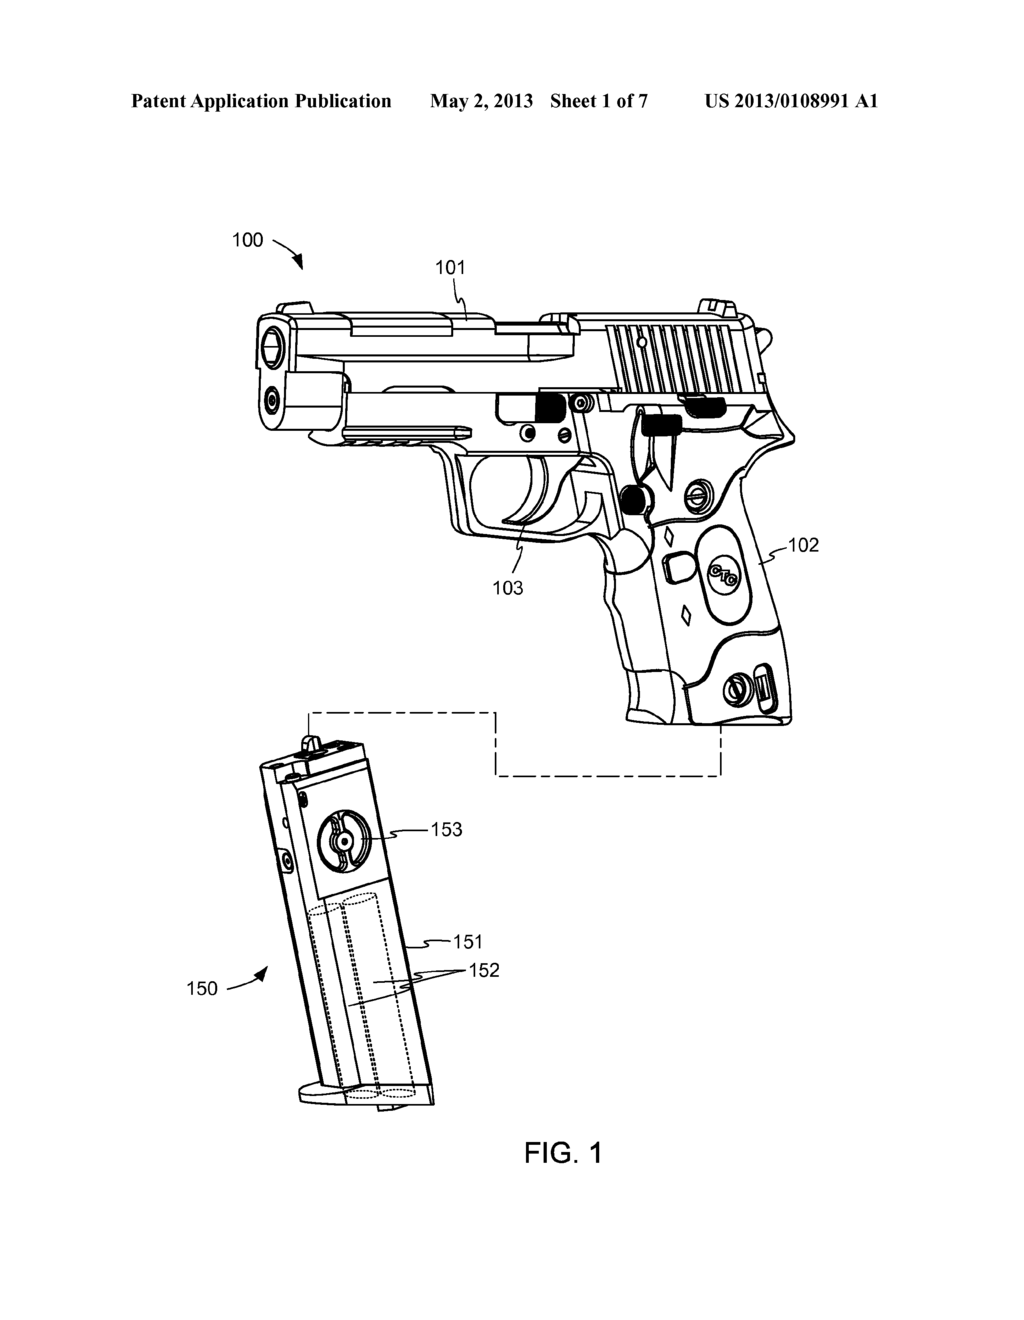 Magazine for simulated tetherless pistols with lockback diagram magazine for simulated tetherless pistols with lockback diagram schematic and image 02 ccuart Image collections